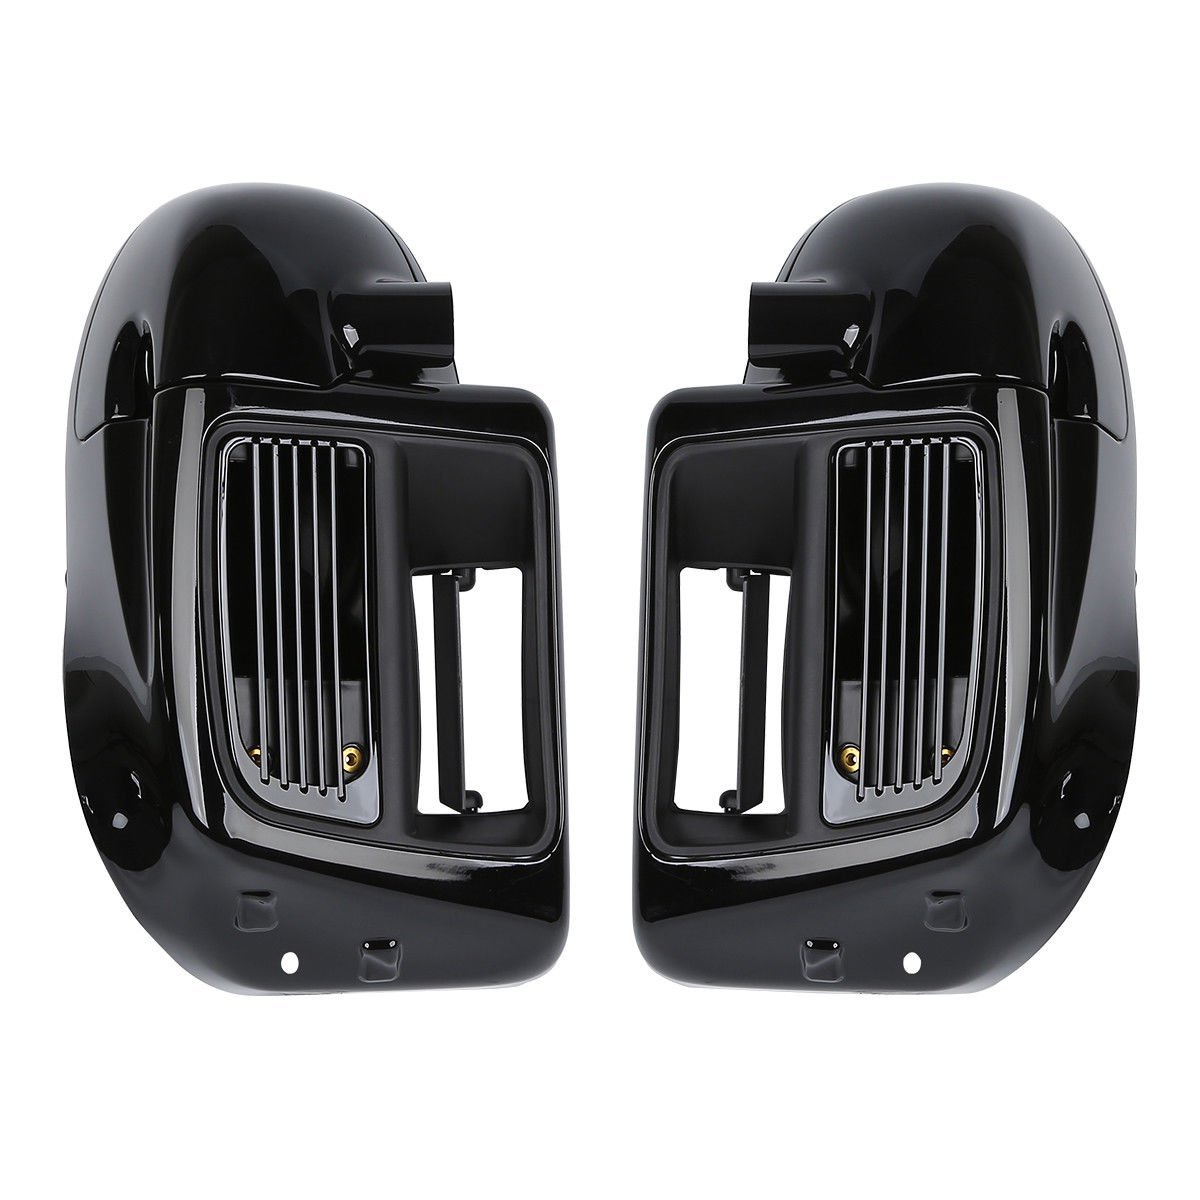 XFMT Lower Vented Fairing For Harley Water-Cooled Touring Electra Street Glide 14-18